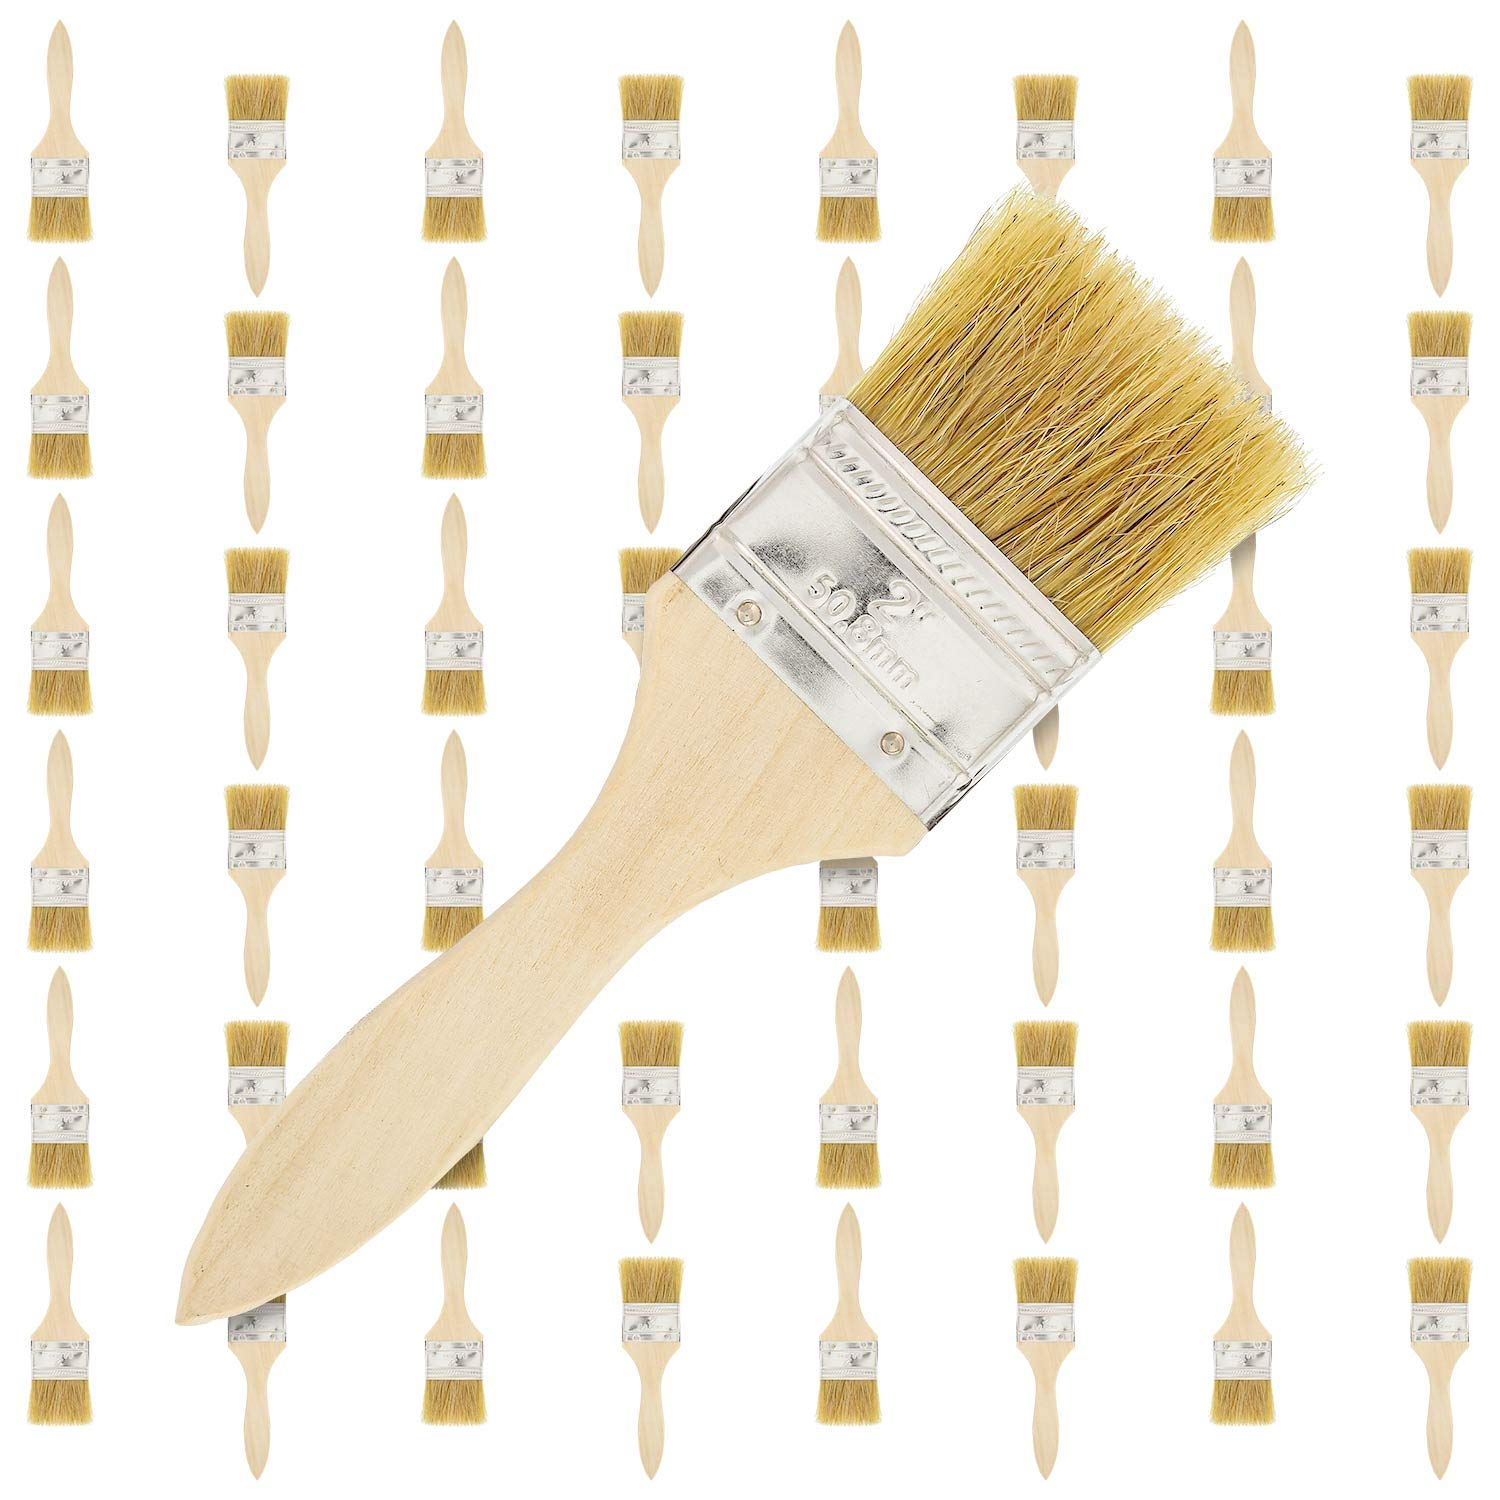 US Art Supply 48 Pack of 2 inch Paint and Chip Paint Brushes for Paint, Stains, Varnishes, Glues, and Gesso